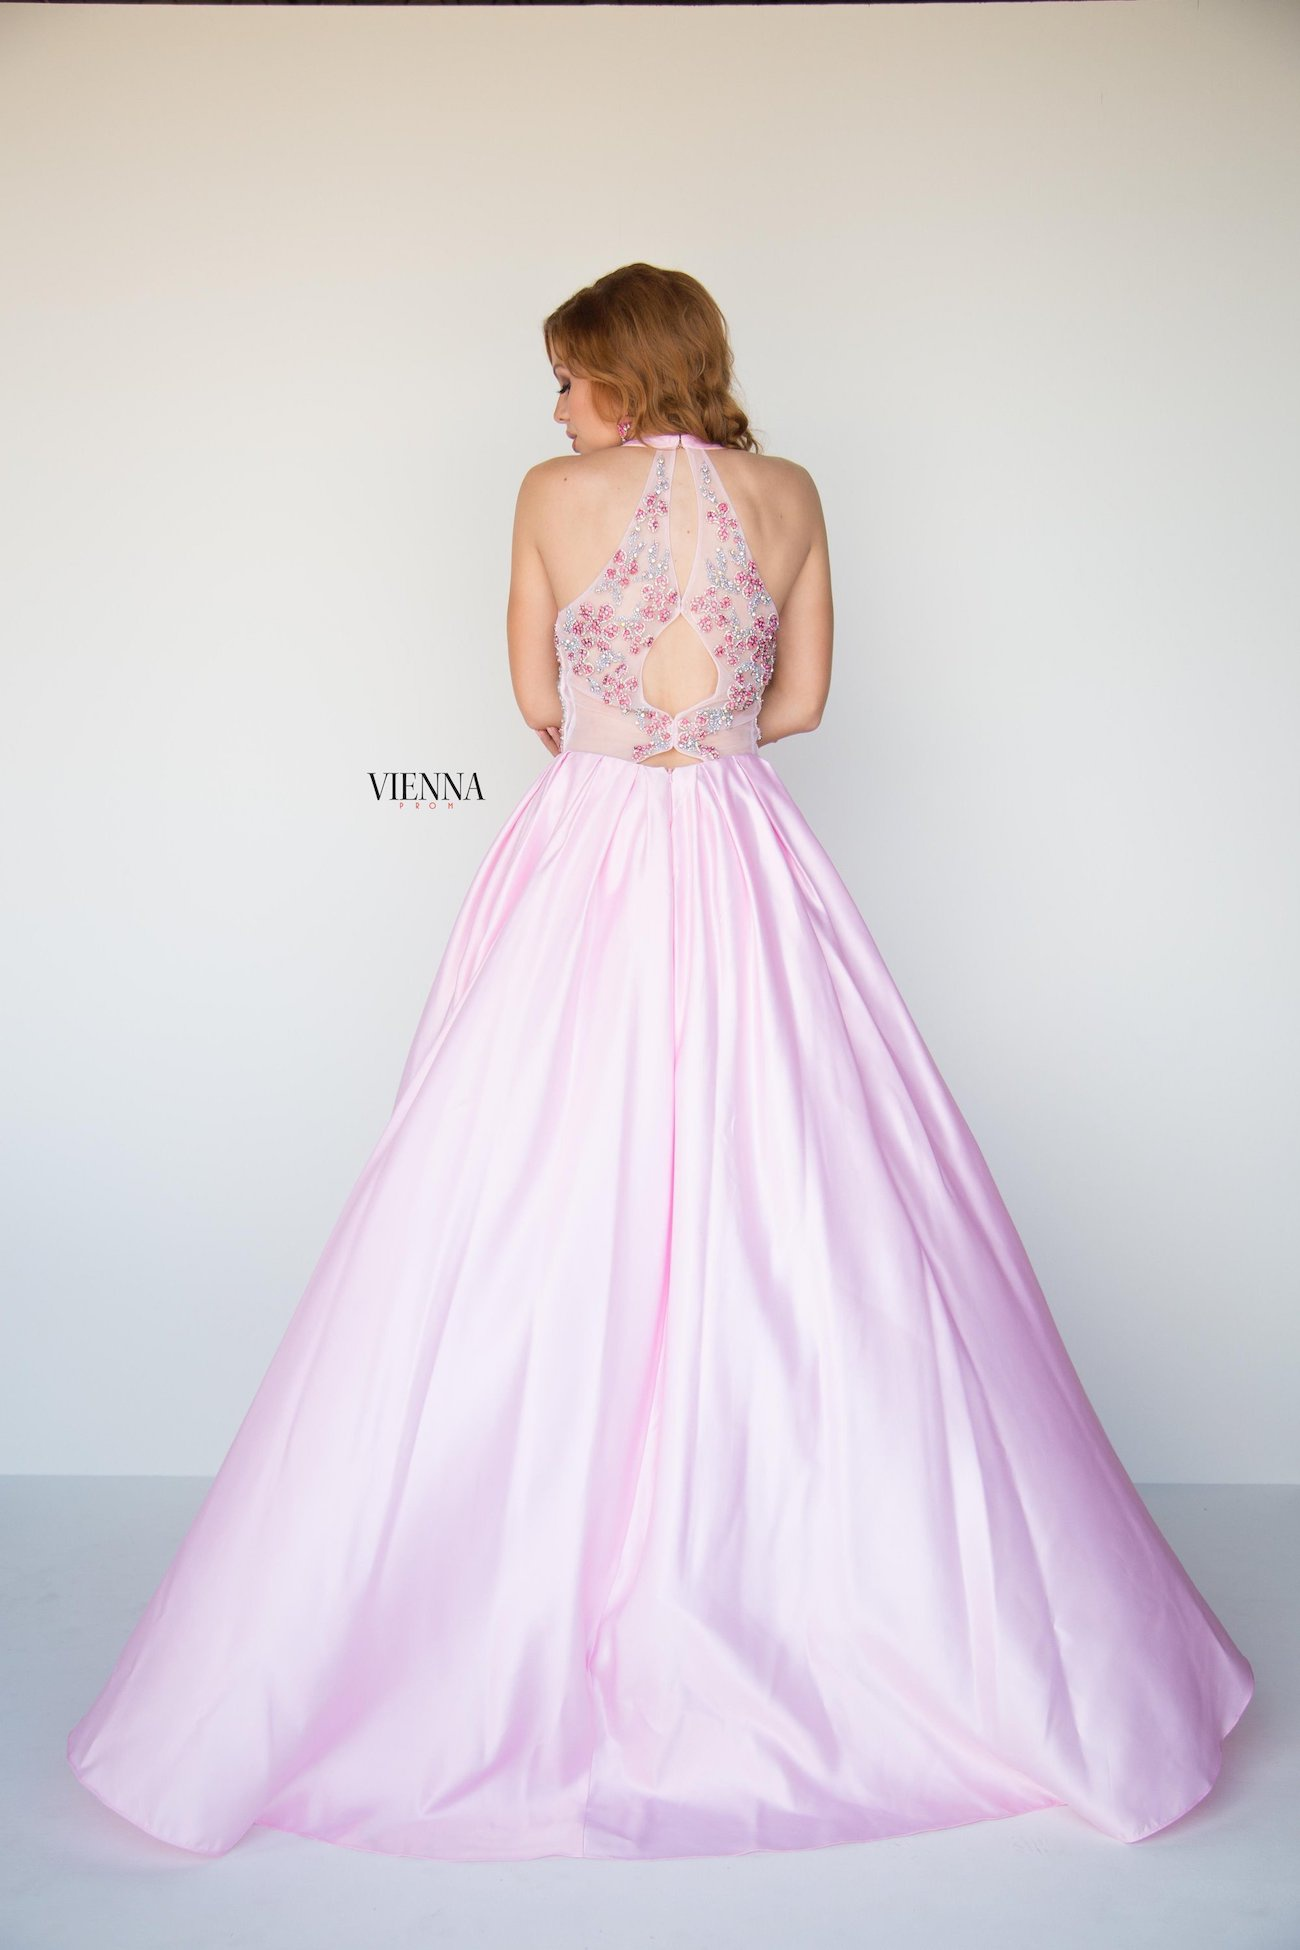 Style 9942 Vienna Light Pink Size 2 Halter A-line Dress on Queenly